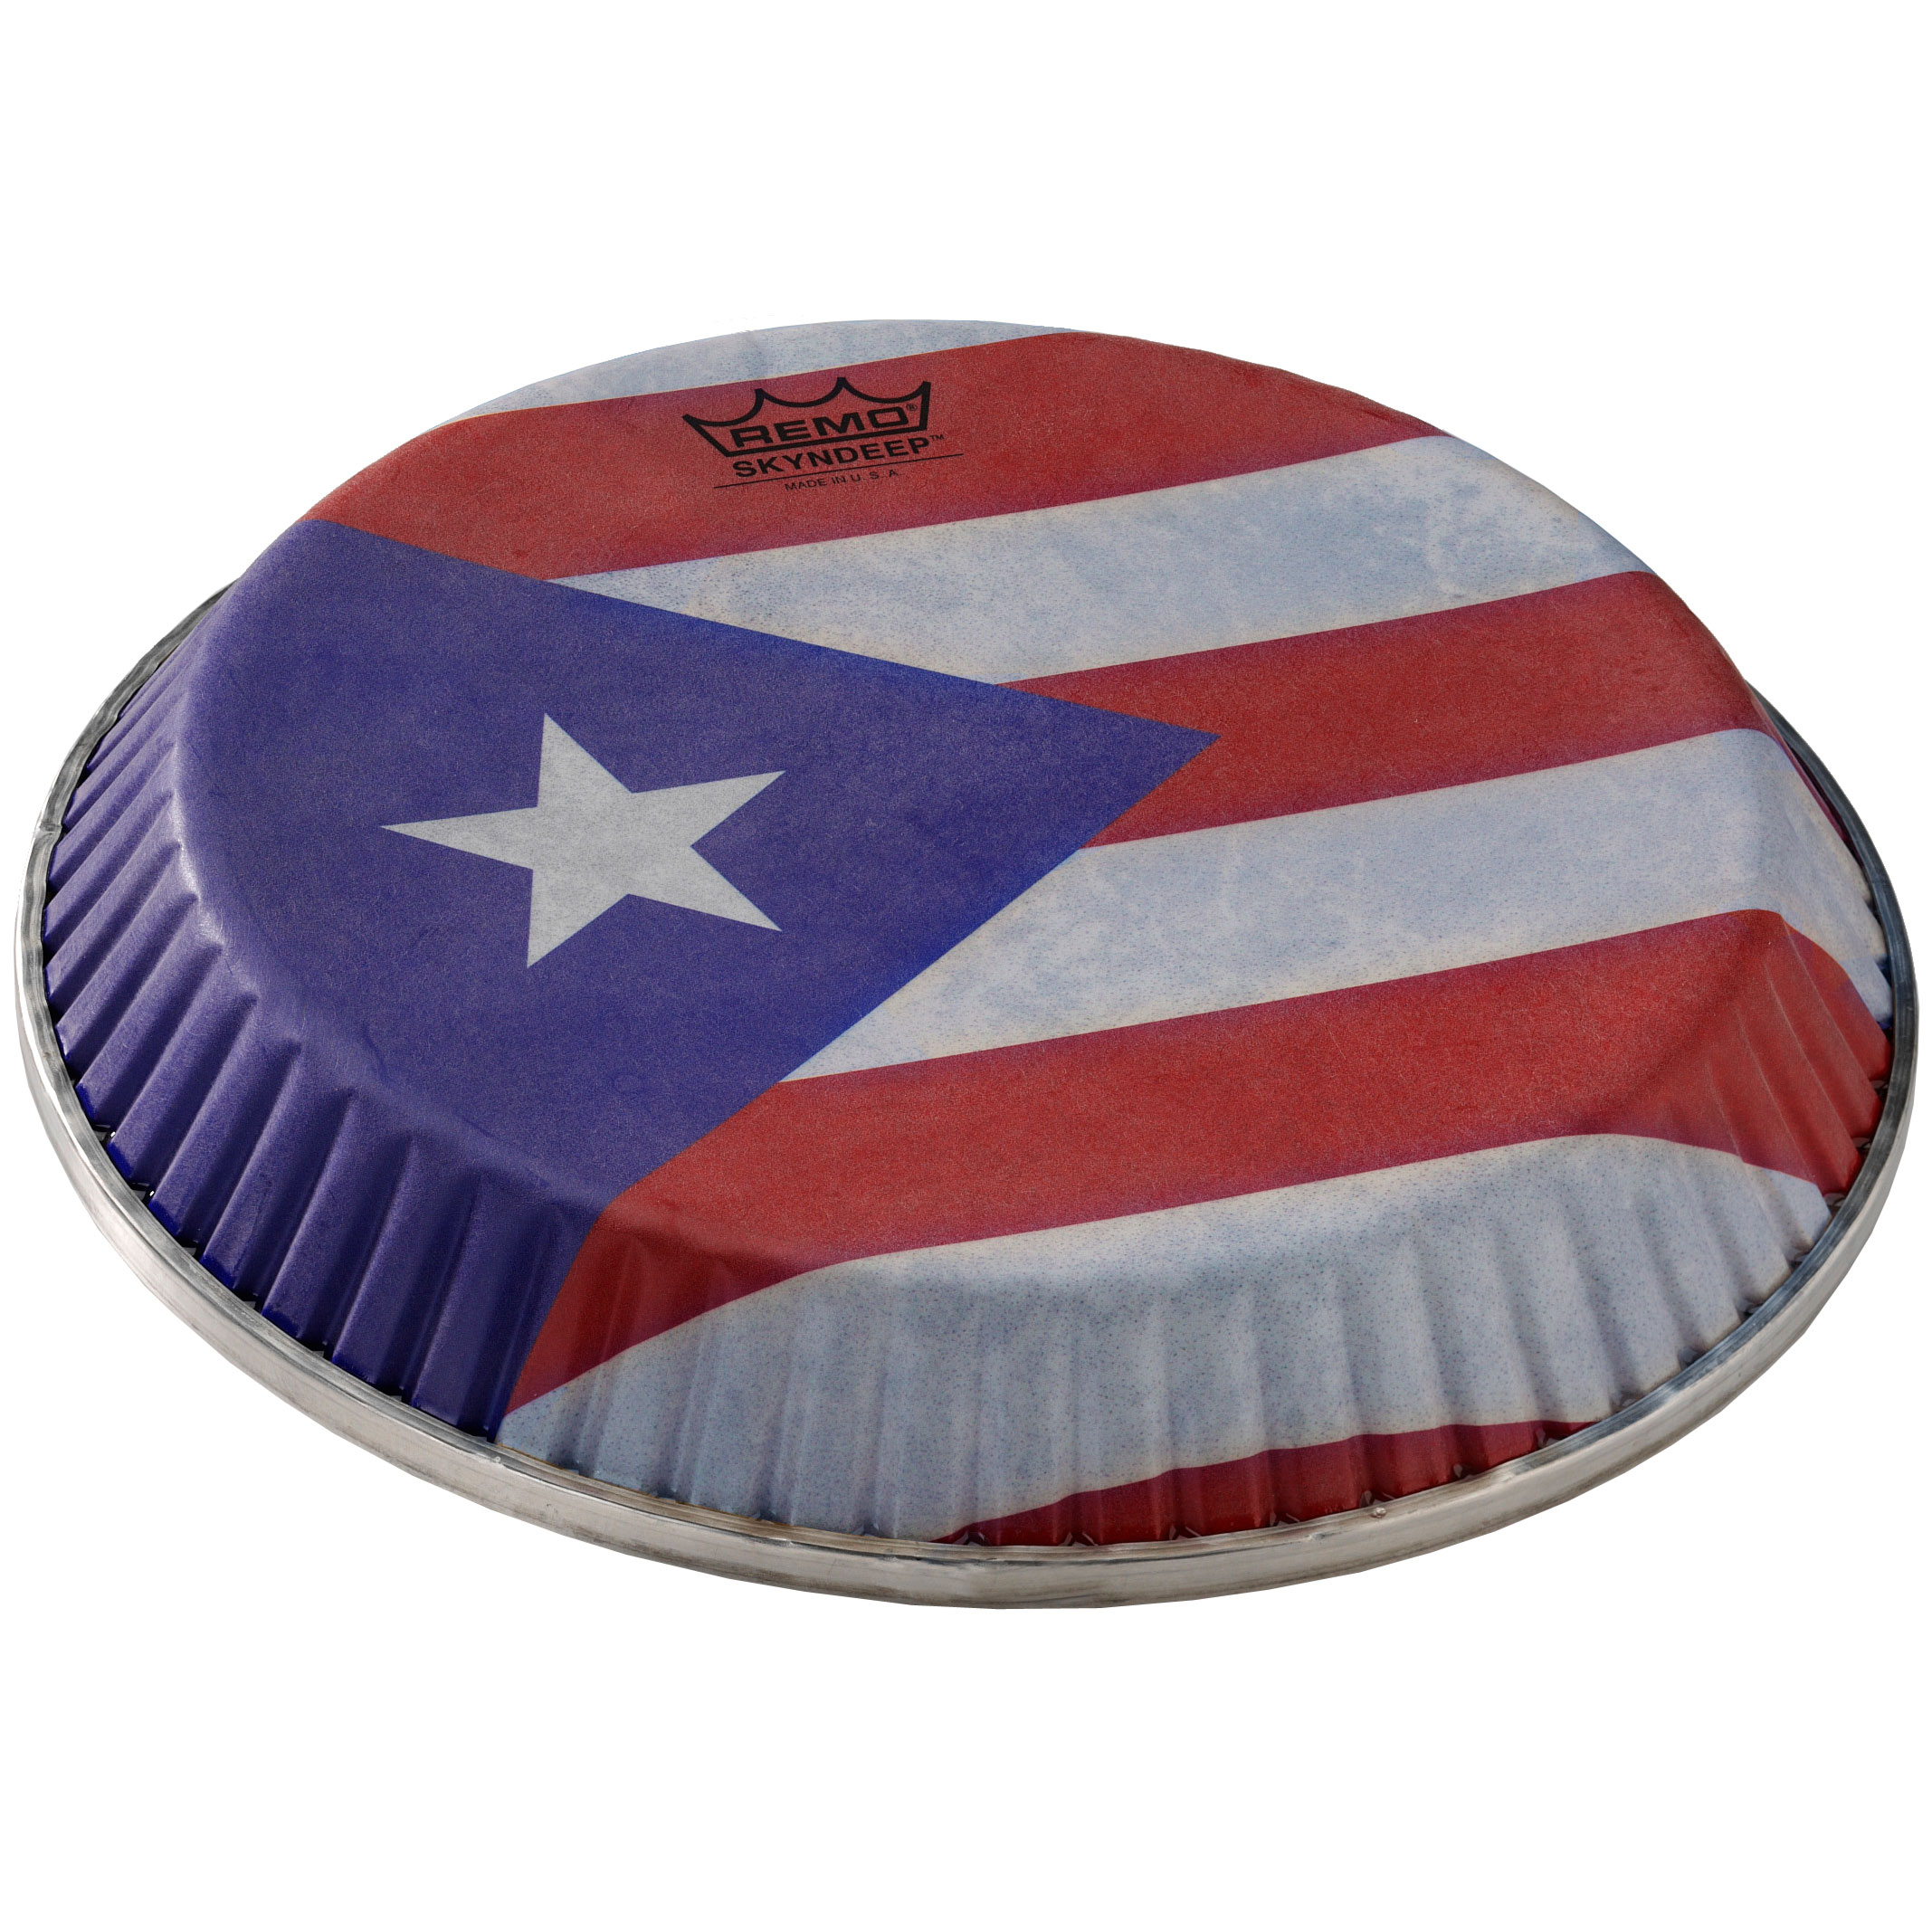 "Remo 11.06"" Symmetry Skyndeep Conga Drum Head (D3 Collar) with Puerto Rican Flag Graphic"